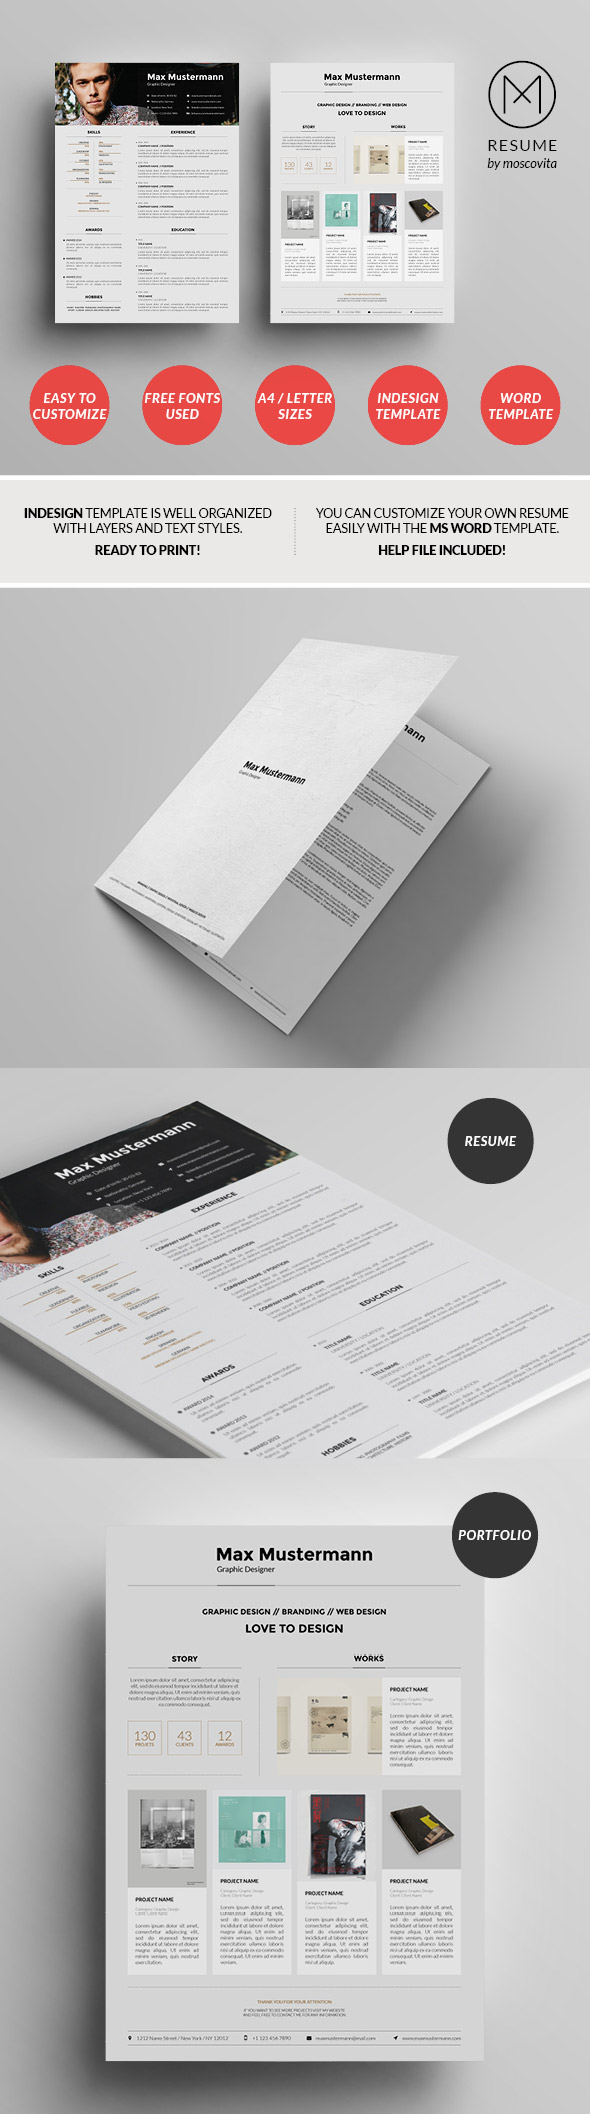 25 creative resume templates to land a new job in style structured creative resume template design